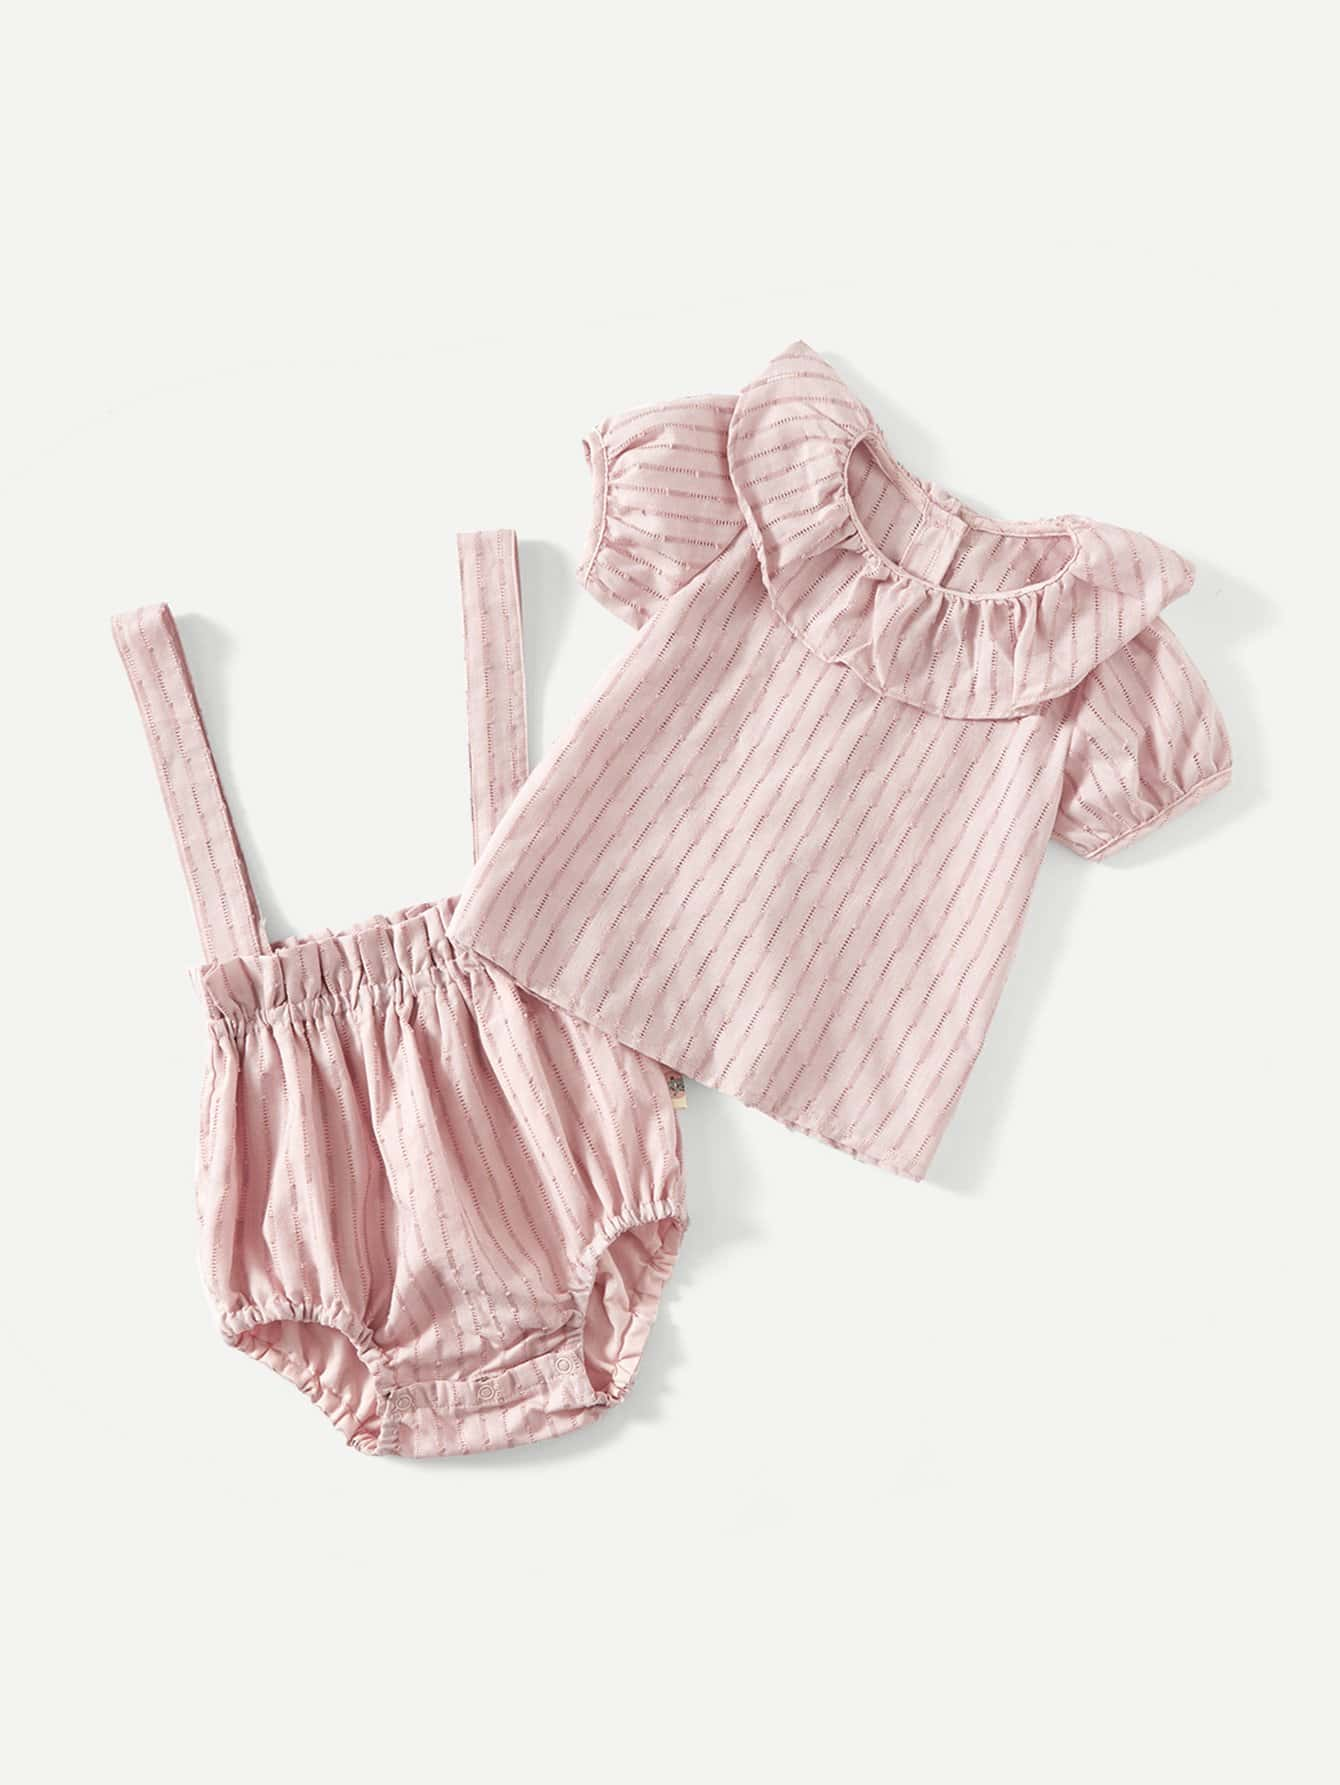 Girls Striped Ruffle Blouse With Overalls 2018 new spring girls children denim jeans jumpsuit overalls pants striped t shirt tracksuit sets for teenagers girls kids 71